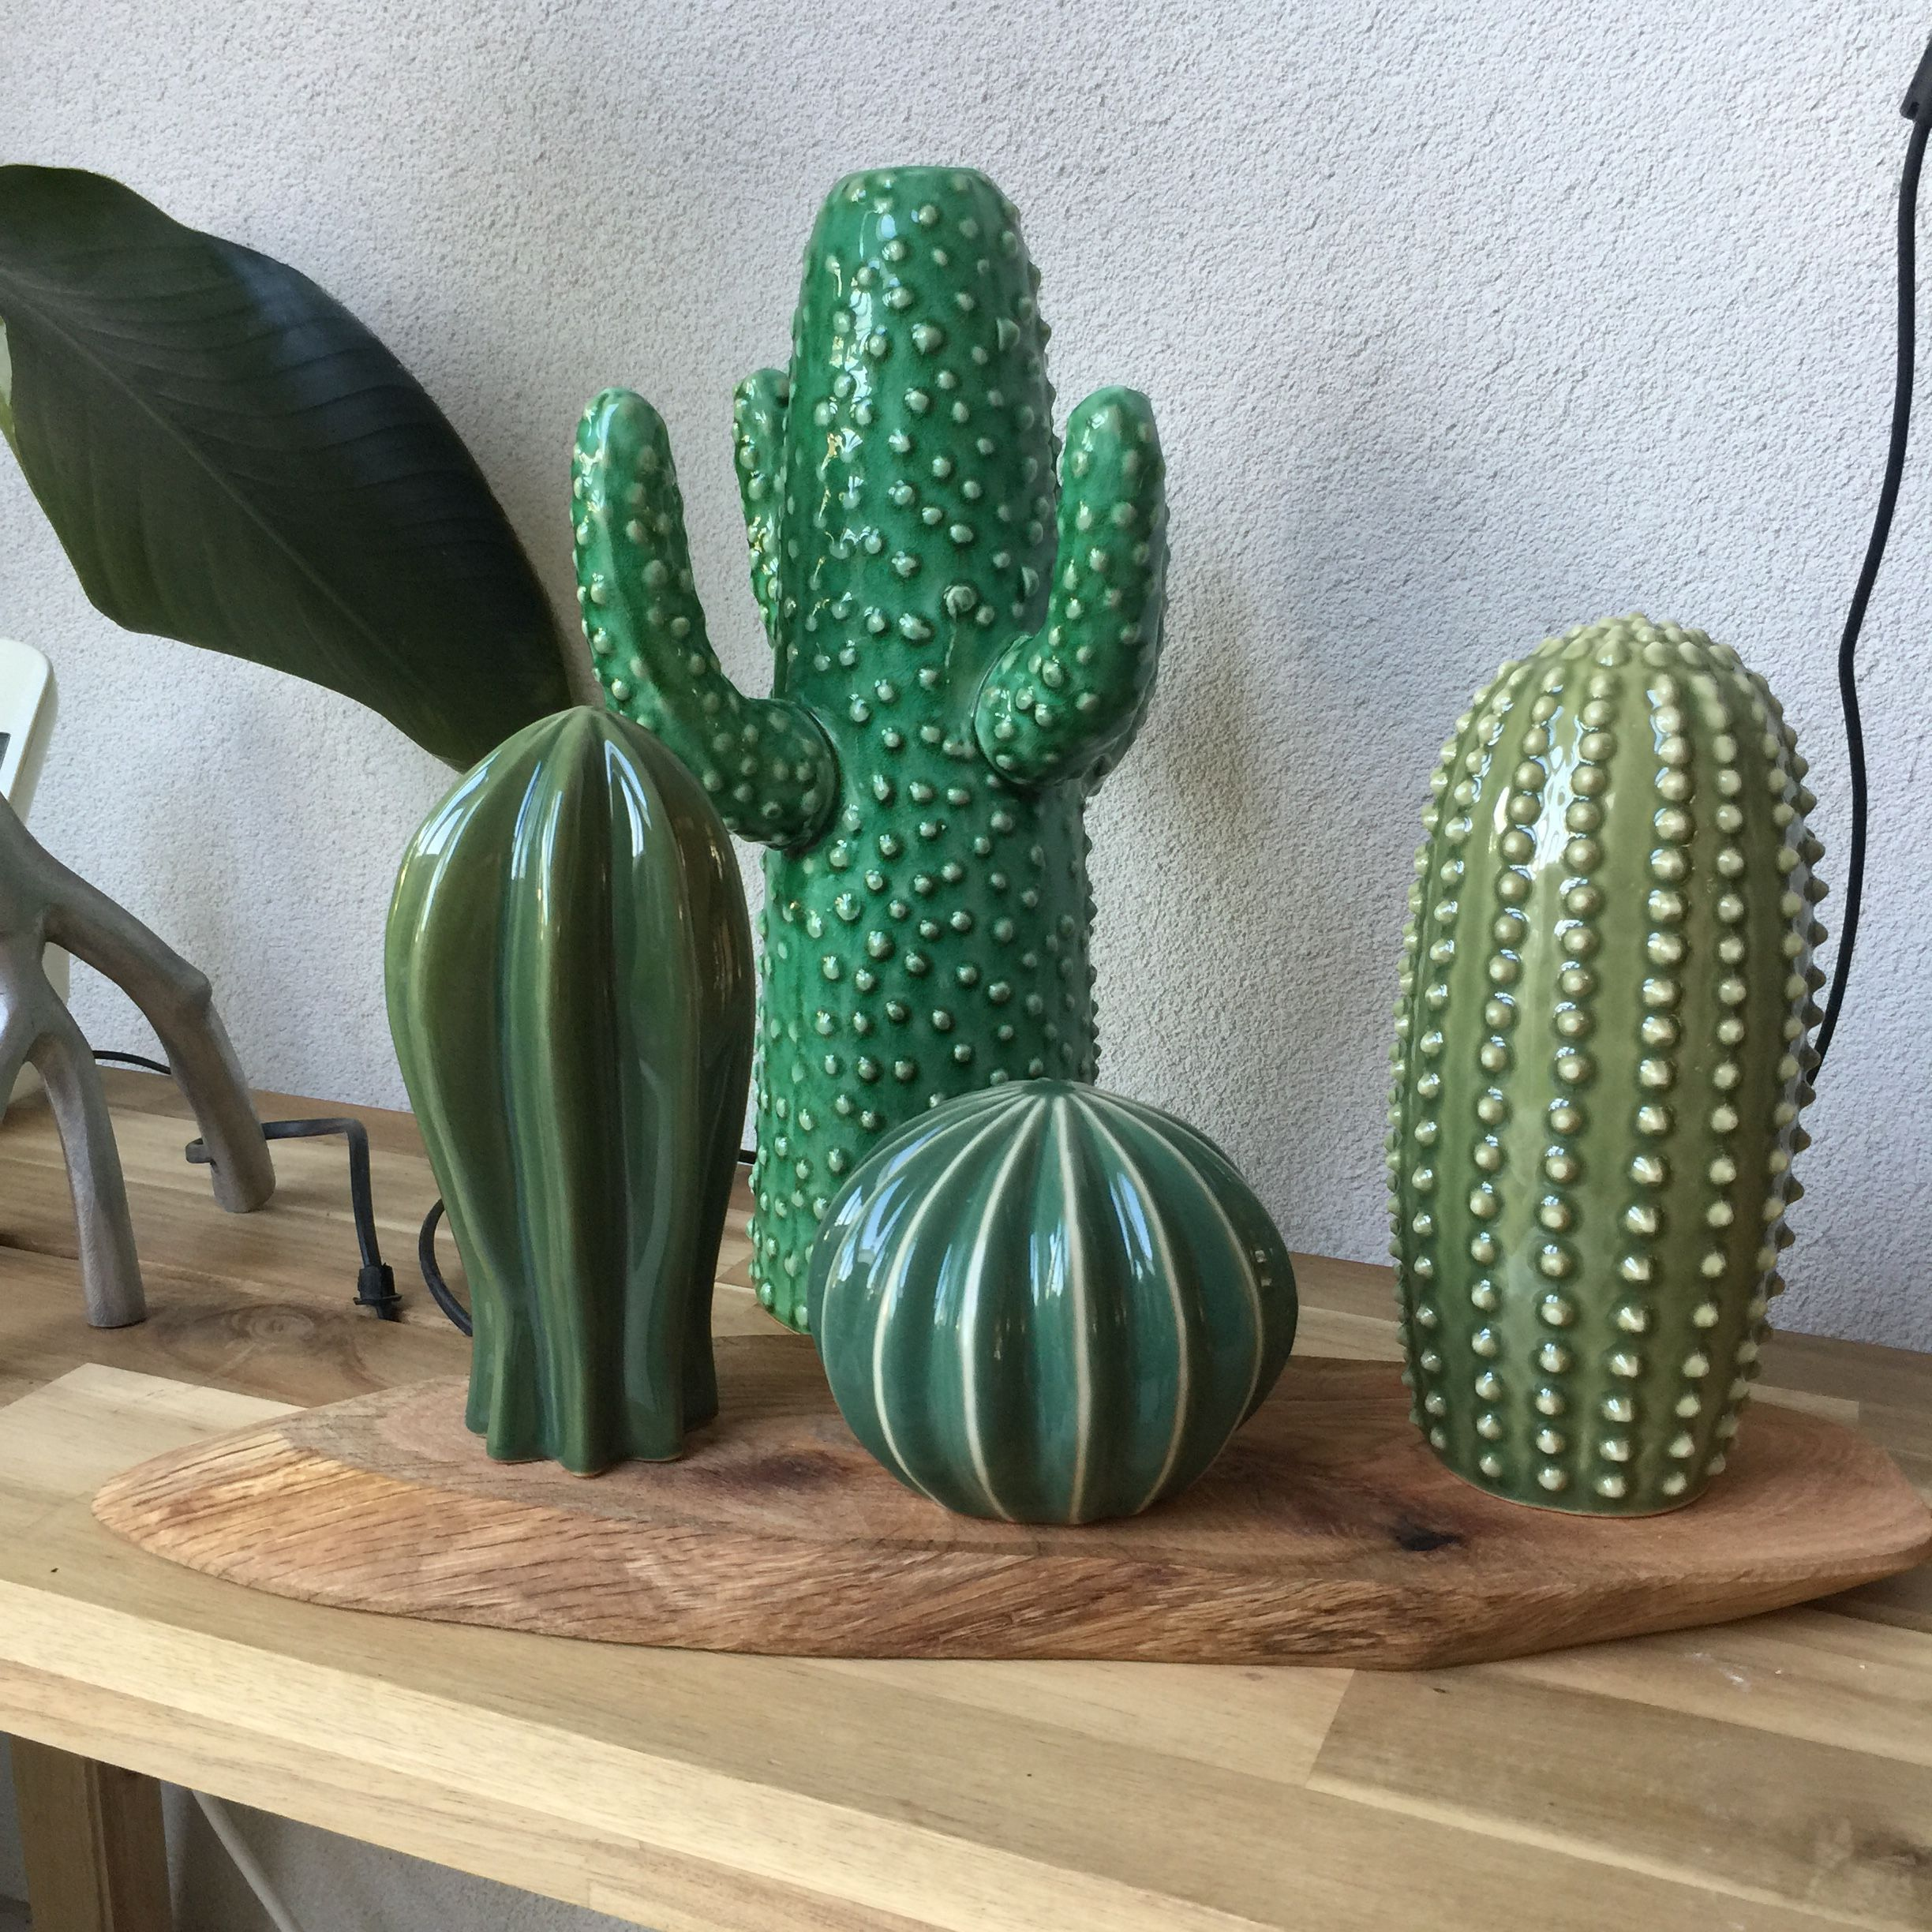 Ceramic Cactus ikea My Beautiful Home Pinterest